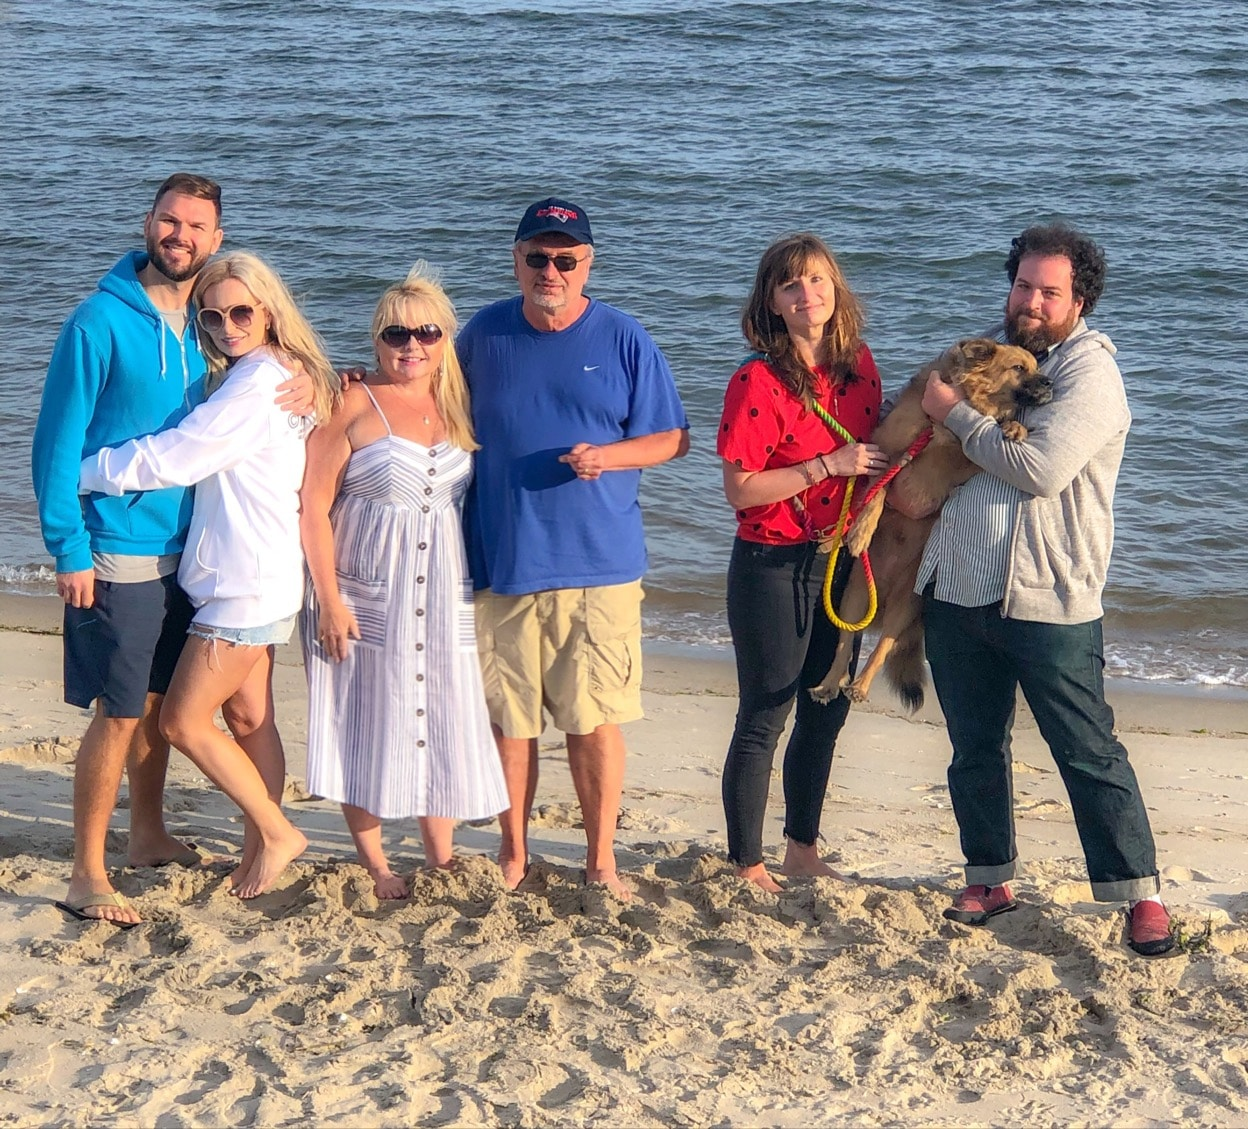 Memories of 2019, family photo on the beach